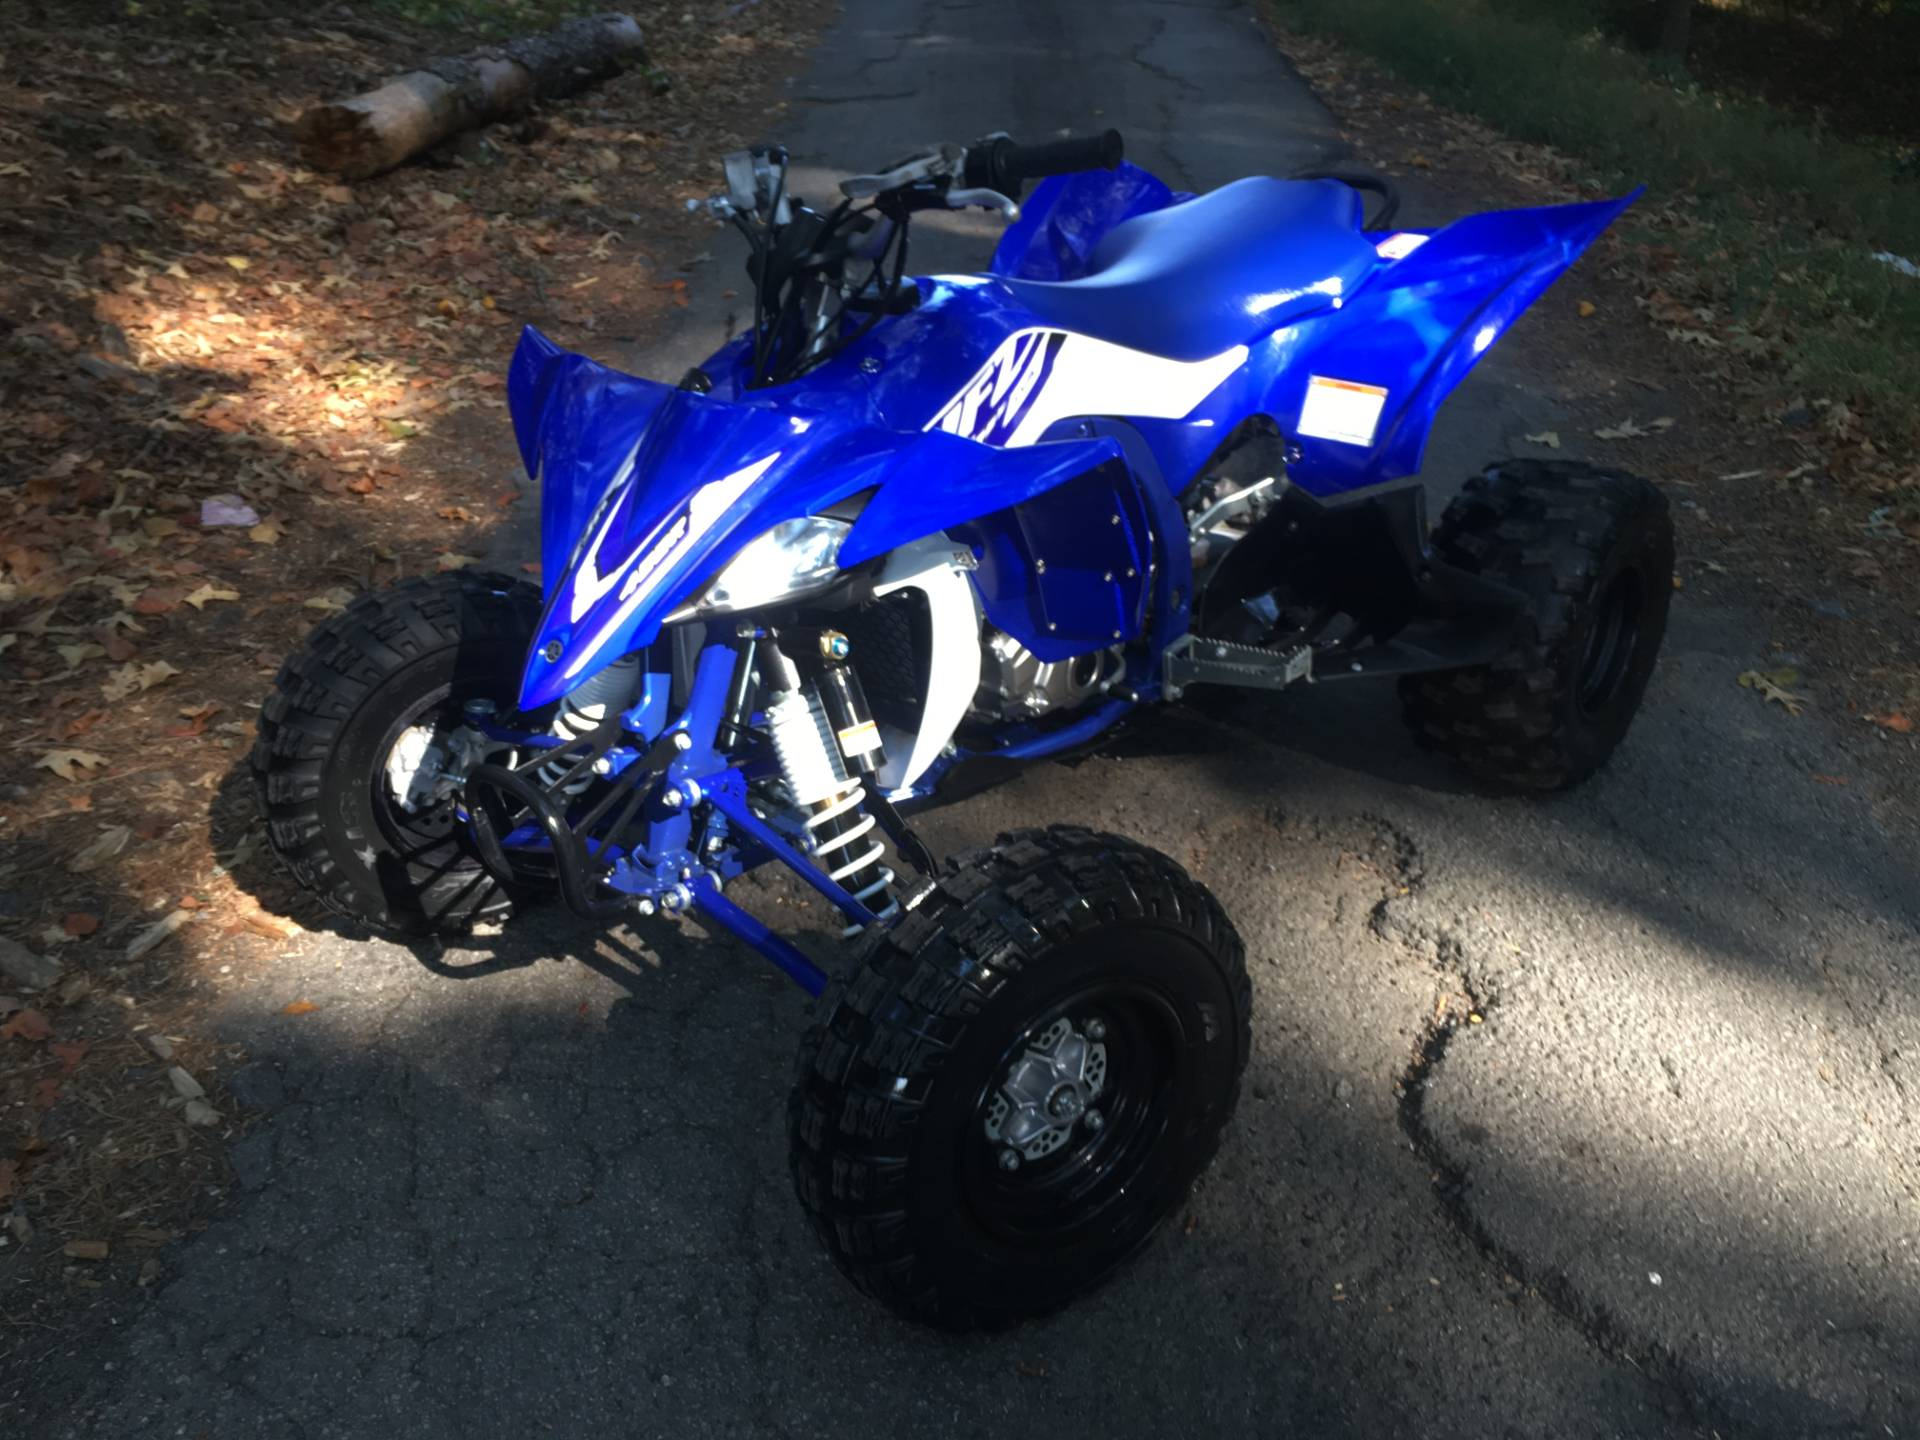 2018 YAMAHA YFZ 450 R in Woodstock, Georgia - Photo 1